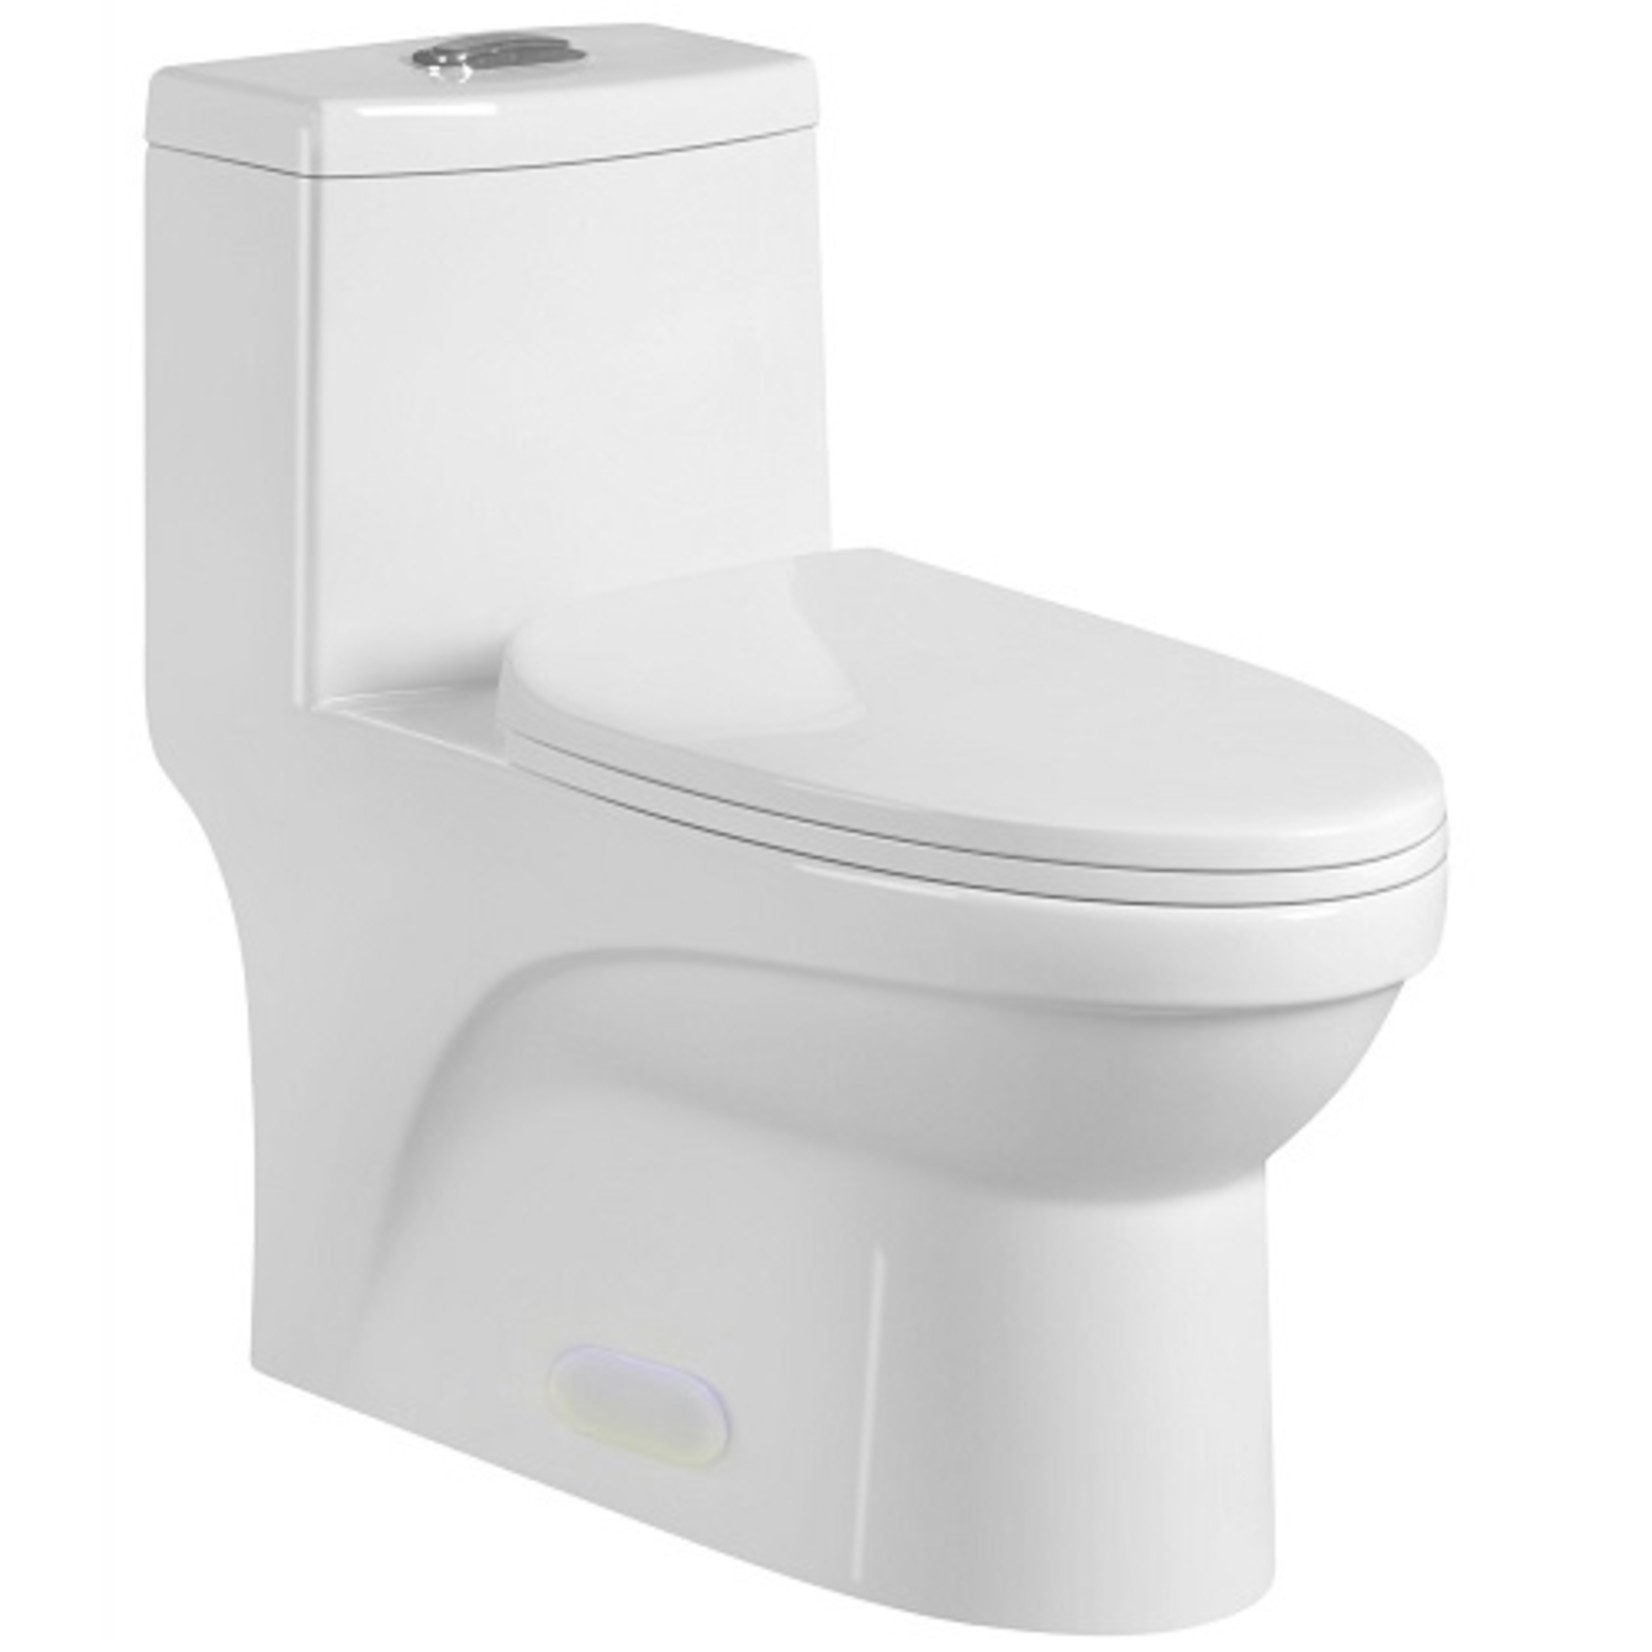 One-piece toilet 12050